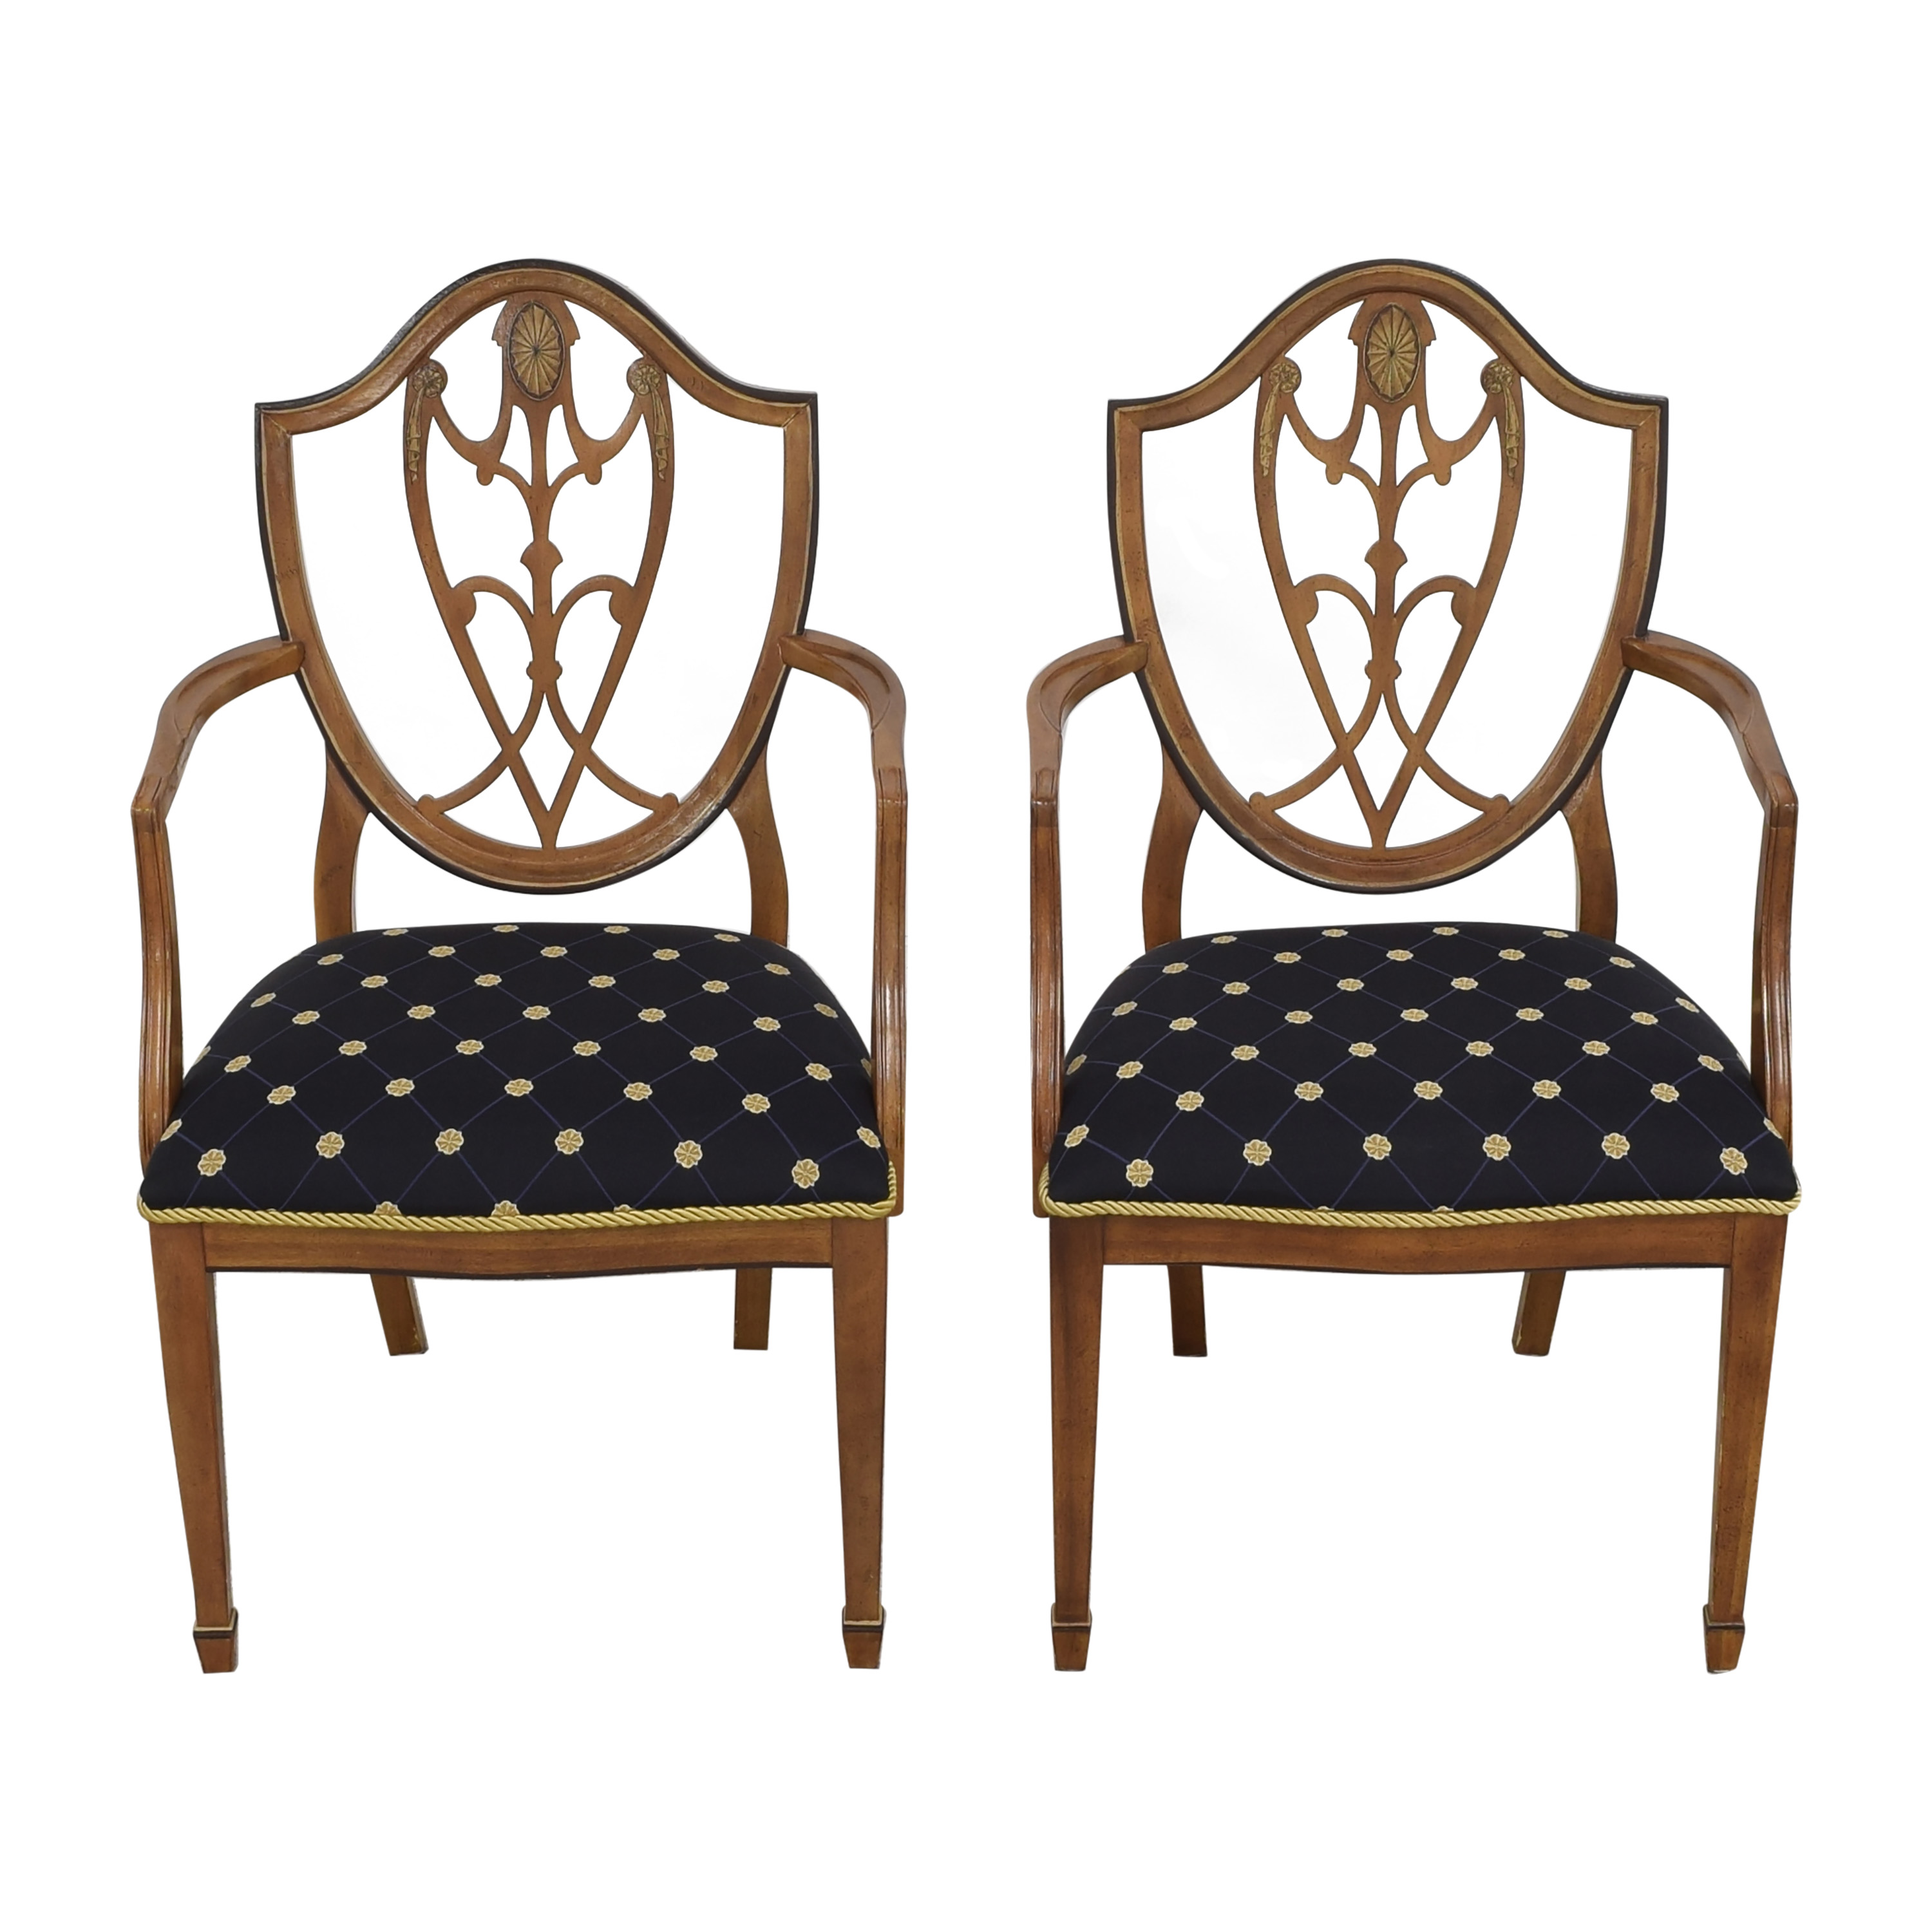 Drexel Drexel Upholstered Dining Arm Chairs ct